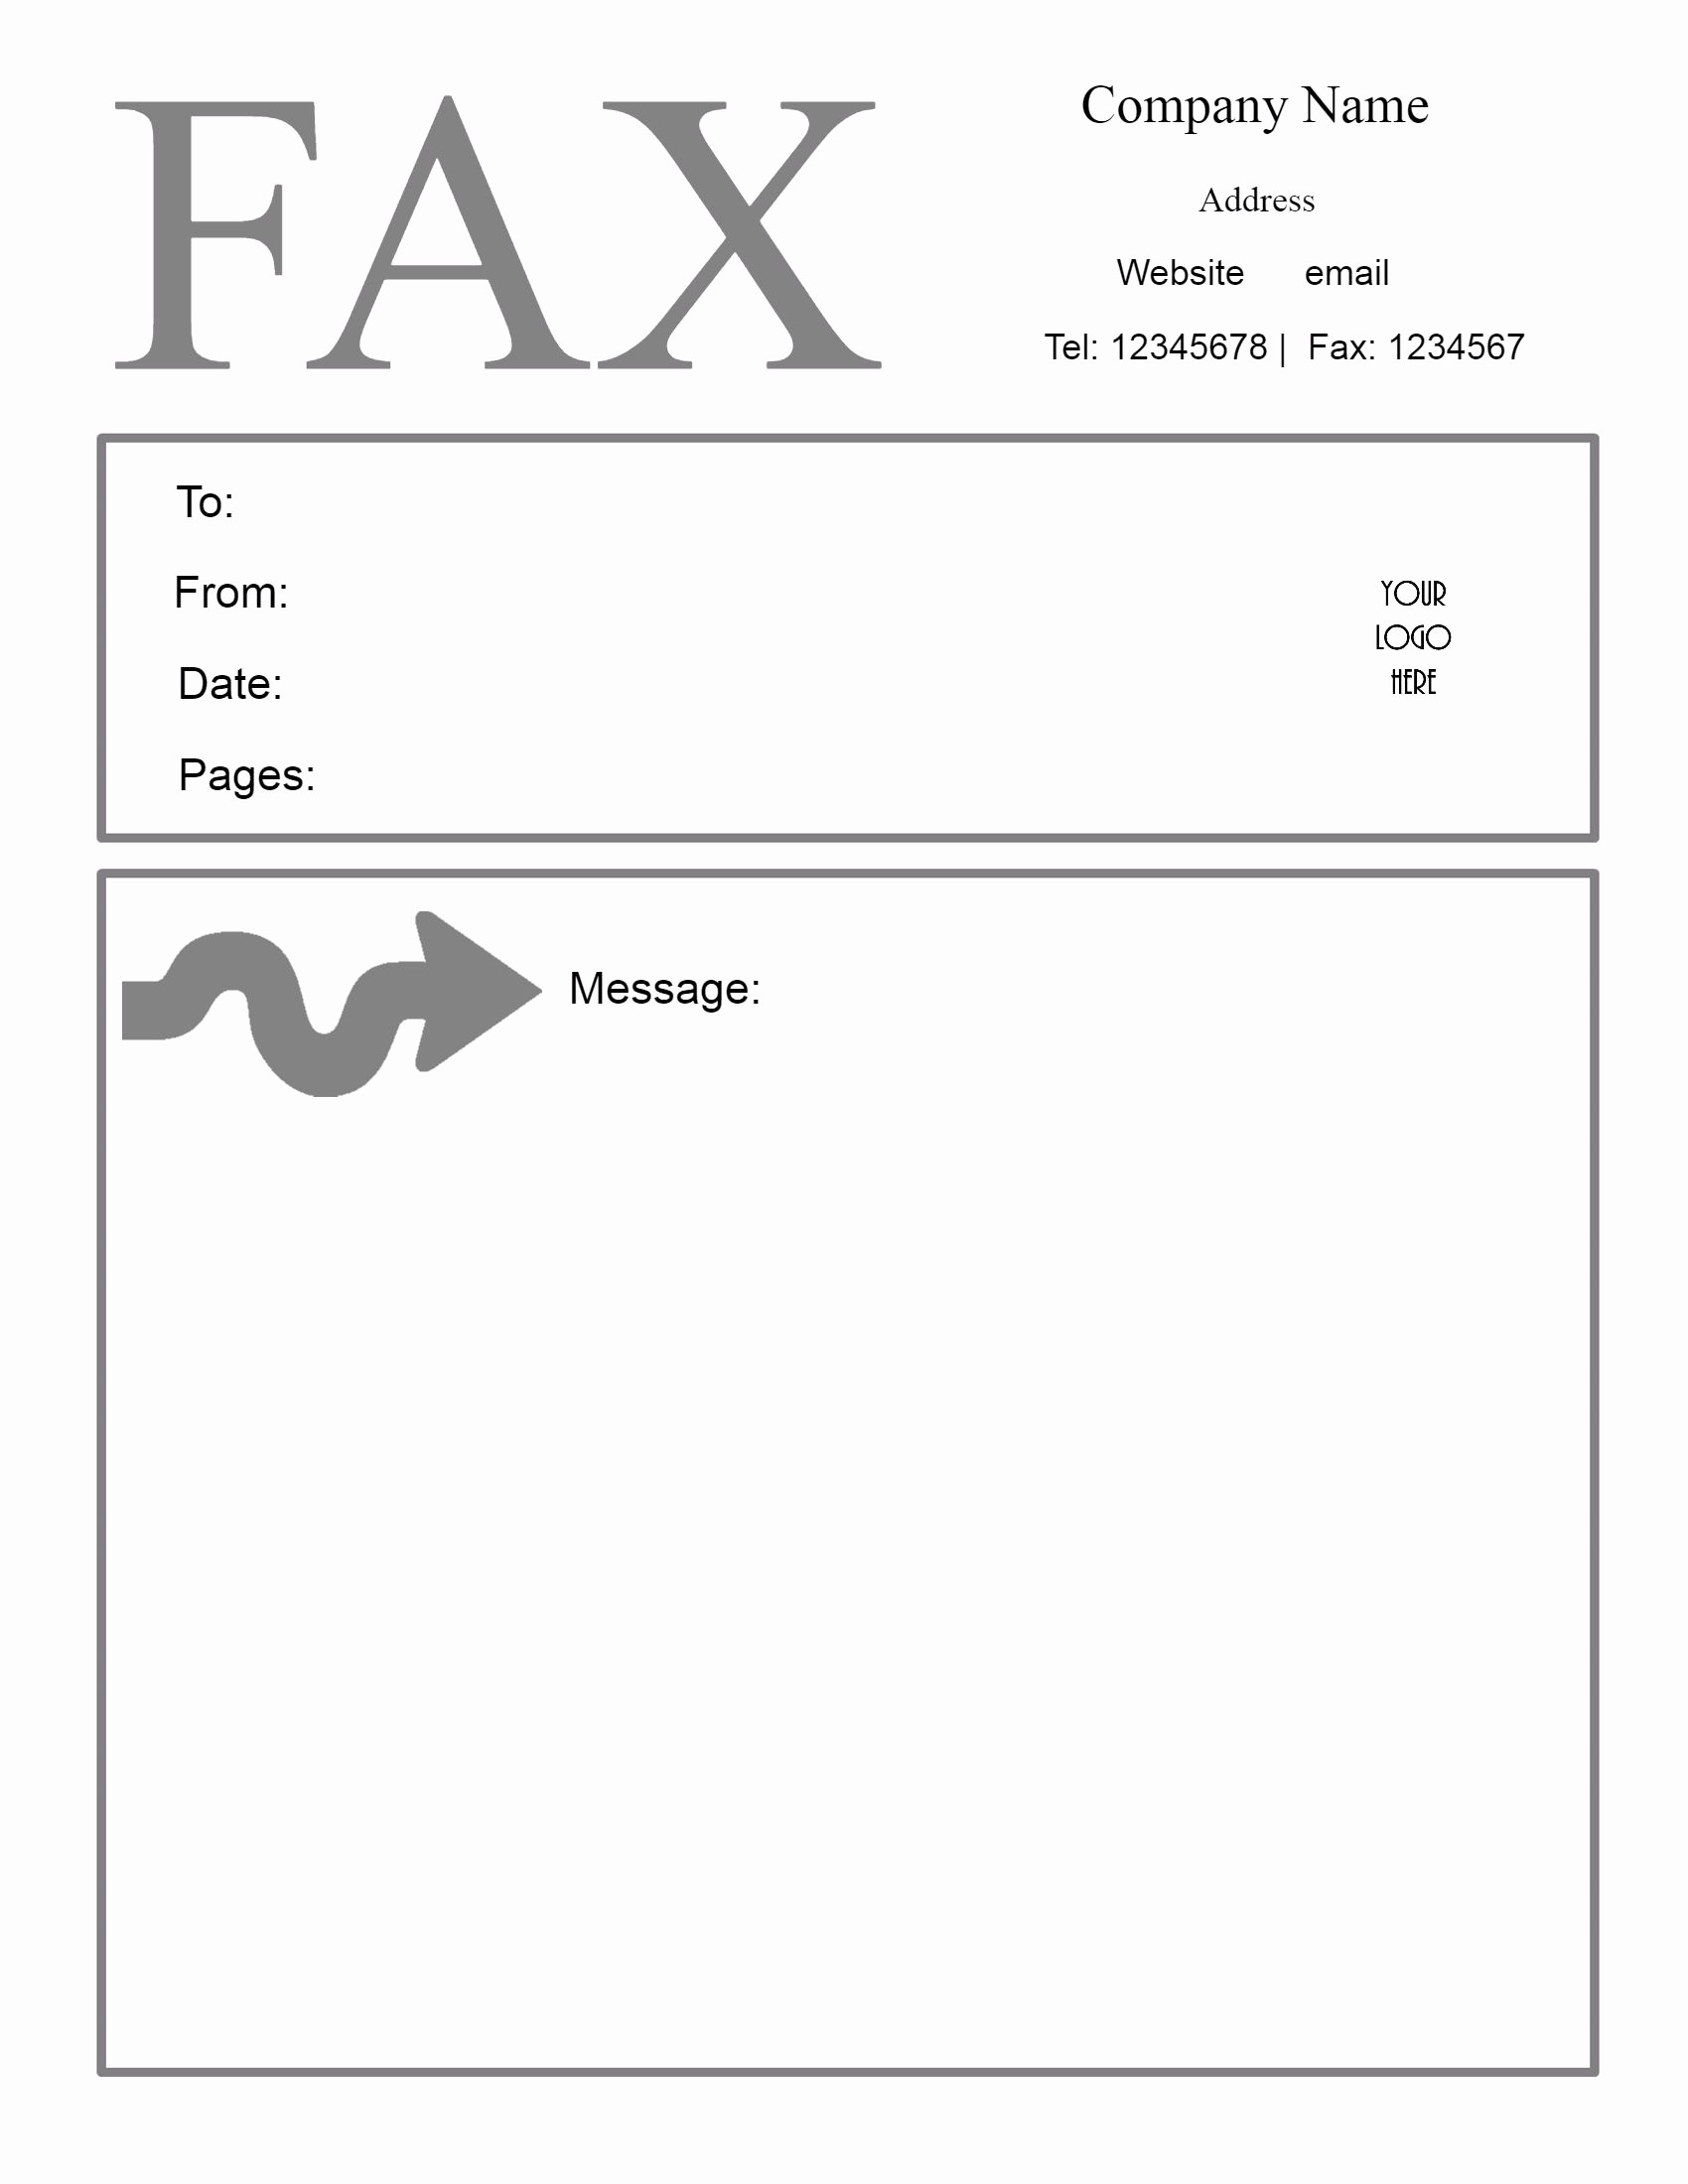 Cover Letter for A Fax Lovely Free Fax Cover Sheet Template